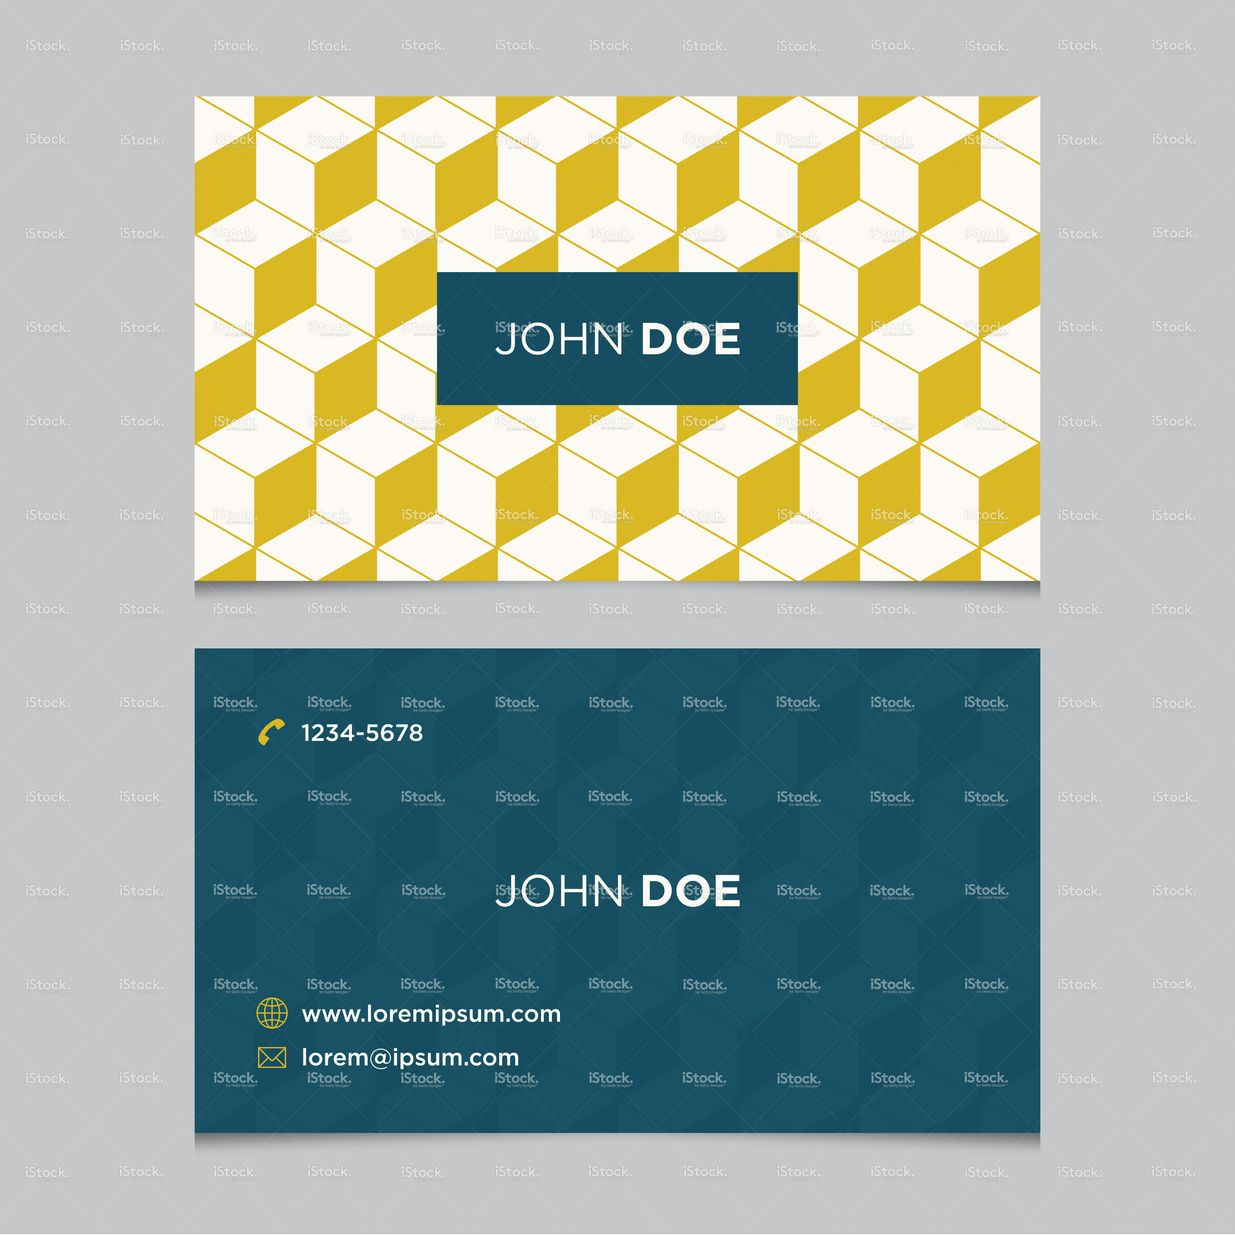 Business Card Template With Background Pattern 09 Stock Vector Art 41109552